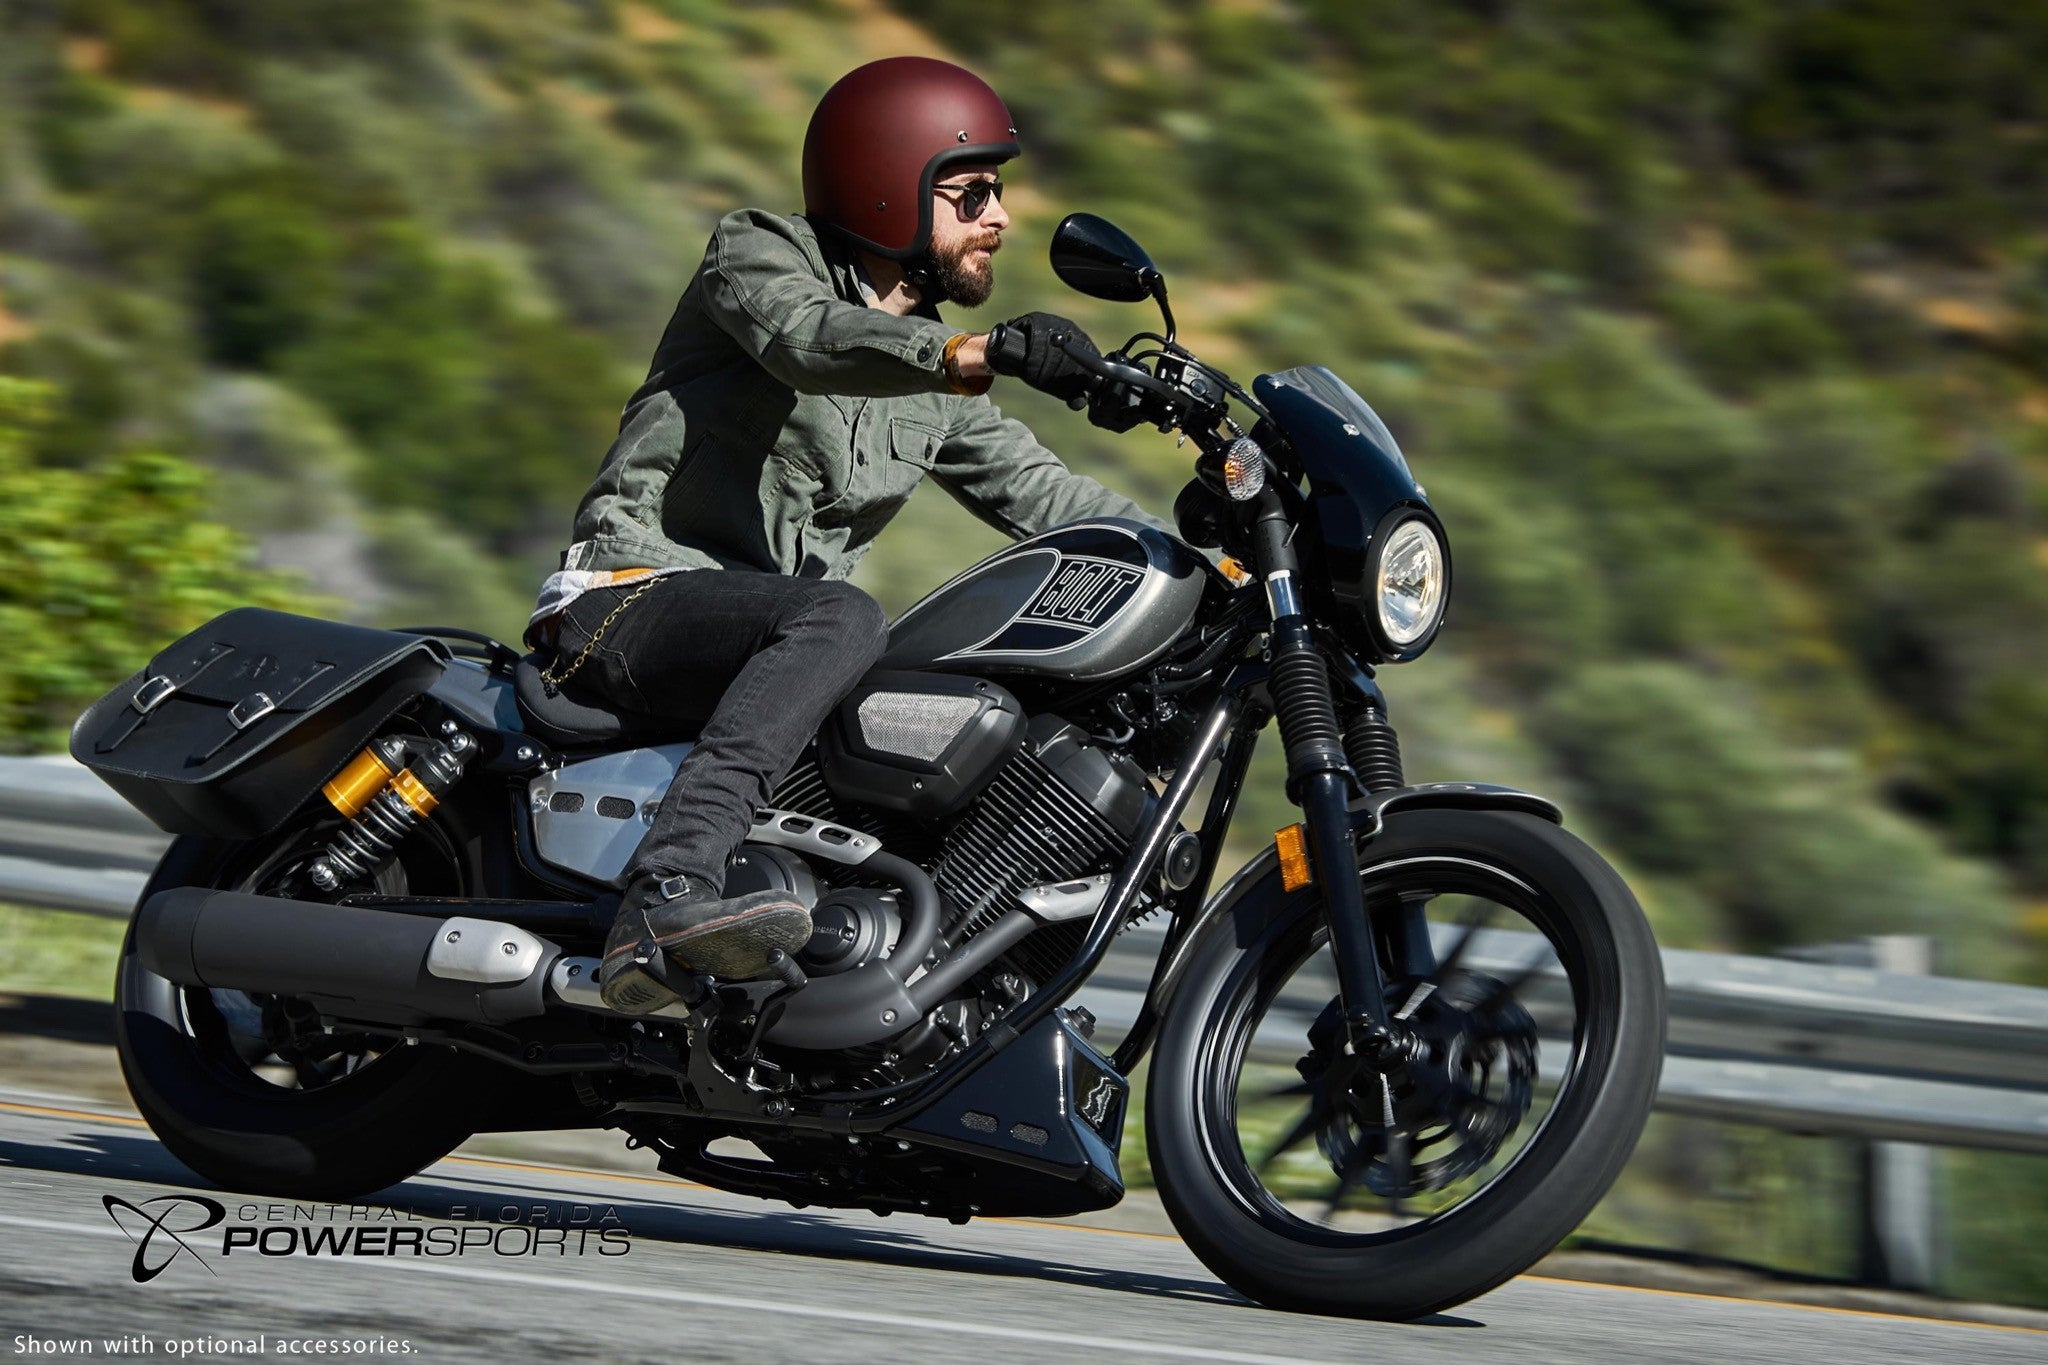 new 2017 yamaha bolt r spec motorcycle for sale cfps kissimmee central florida powersports. Black Bedroom Furniture Sets. Home Design Ideas